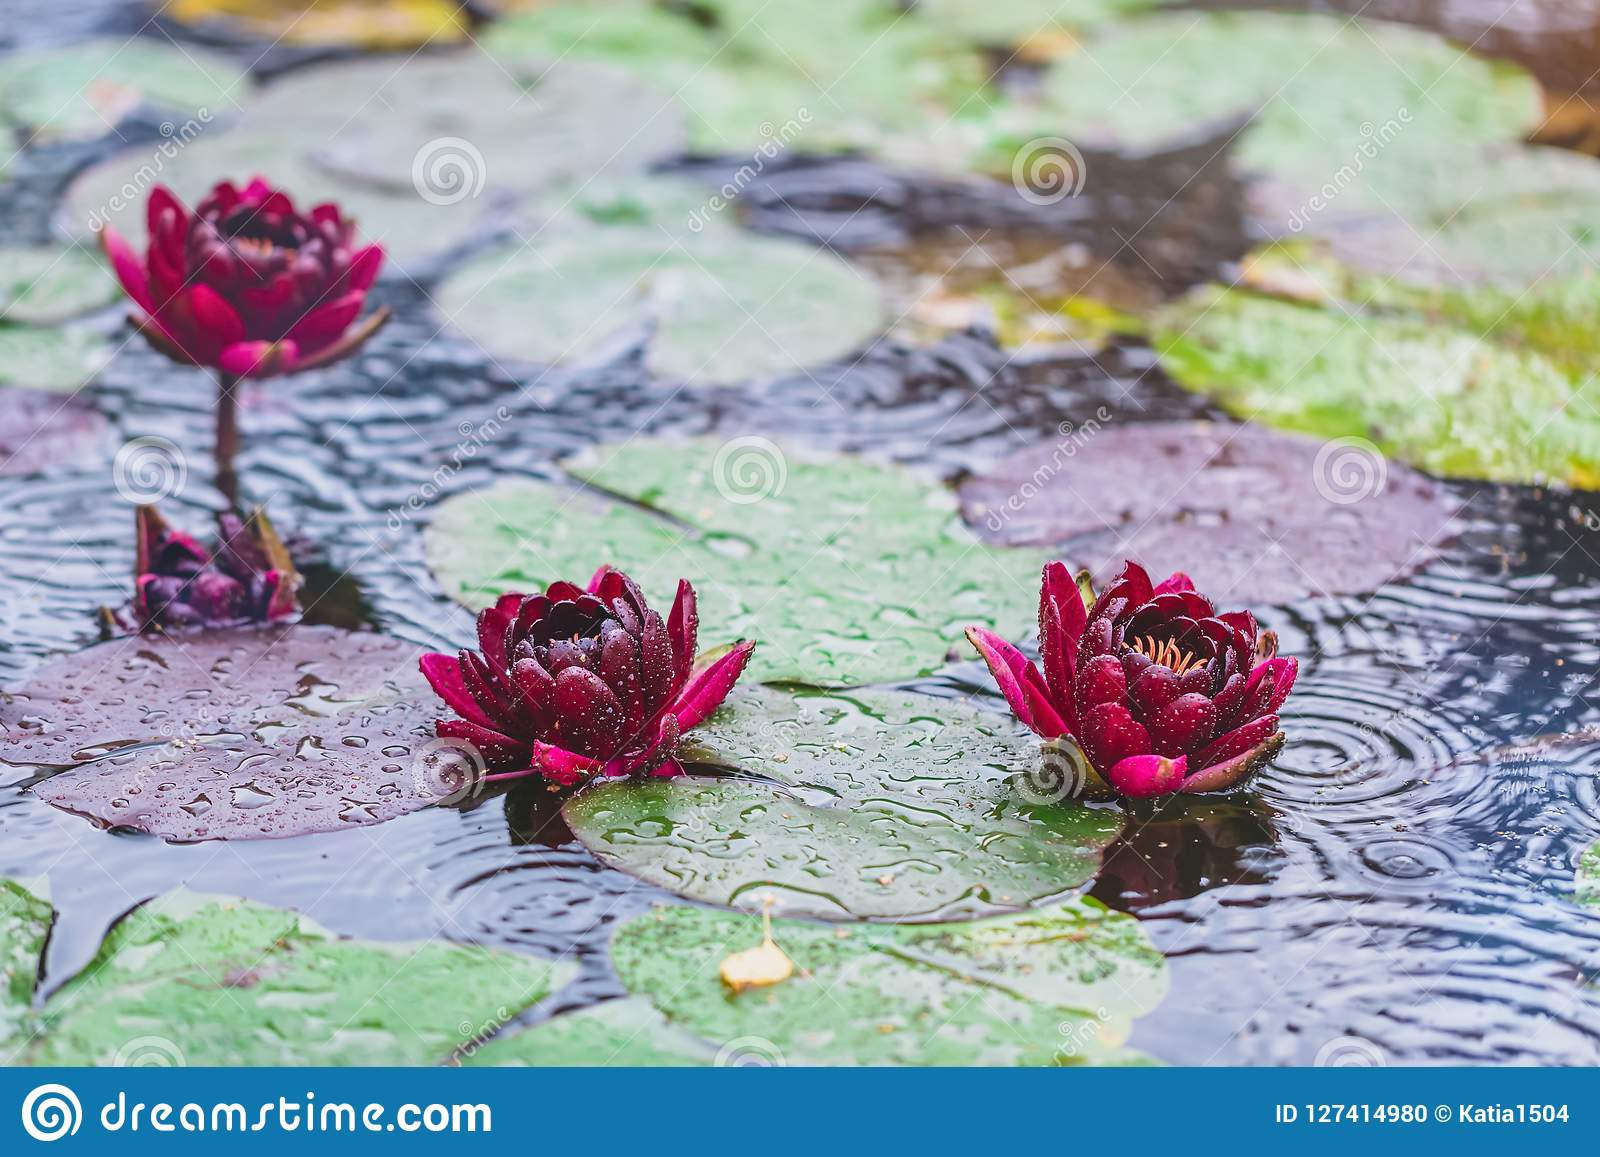 Beautiful bright nature floral background with waterlily in the rain beautiful bright nature floral background with waterlily in the rain red lotus flowers growing in mightylinksfo